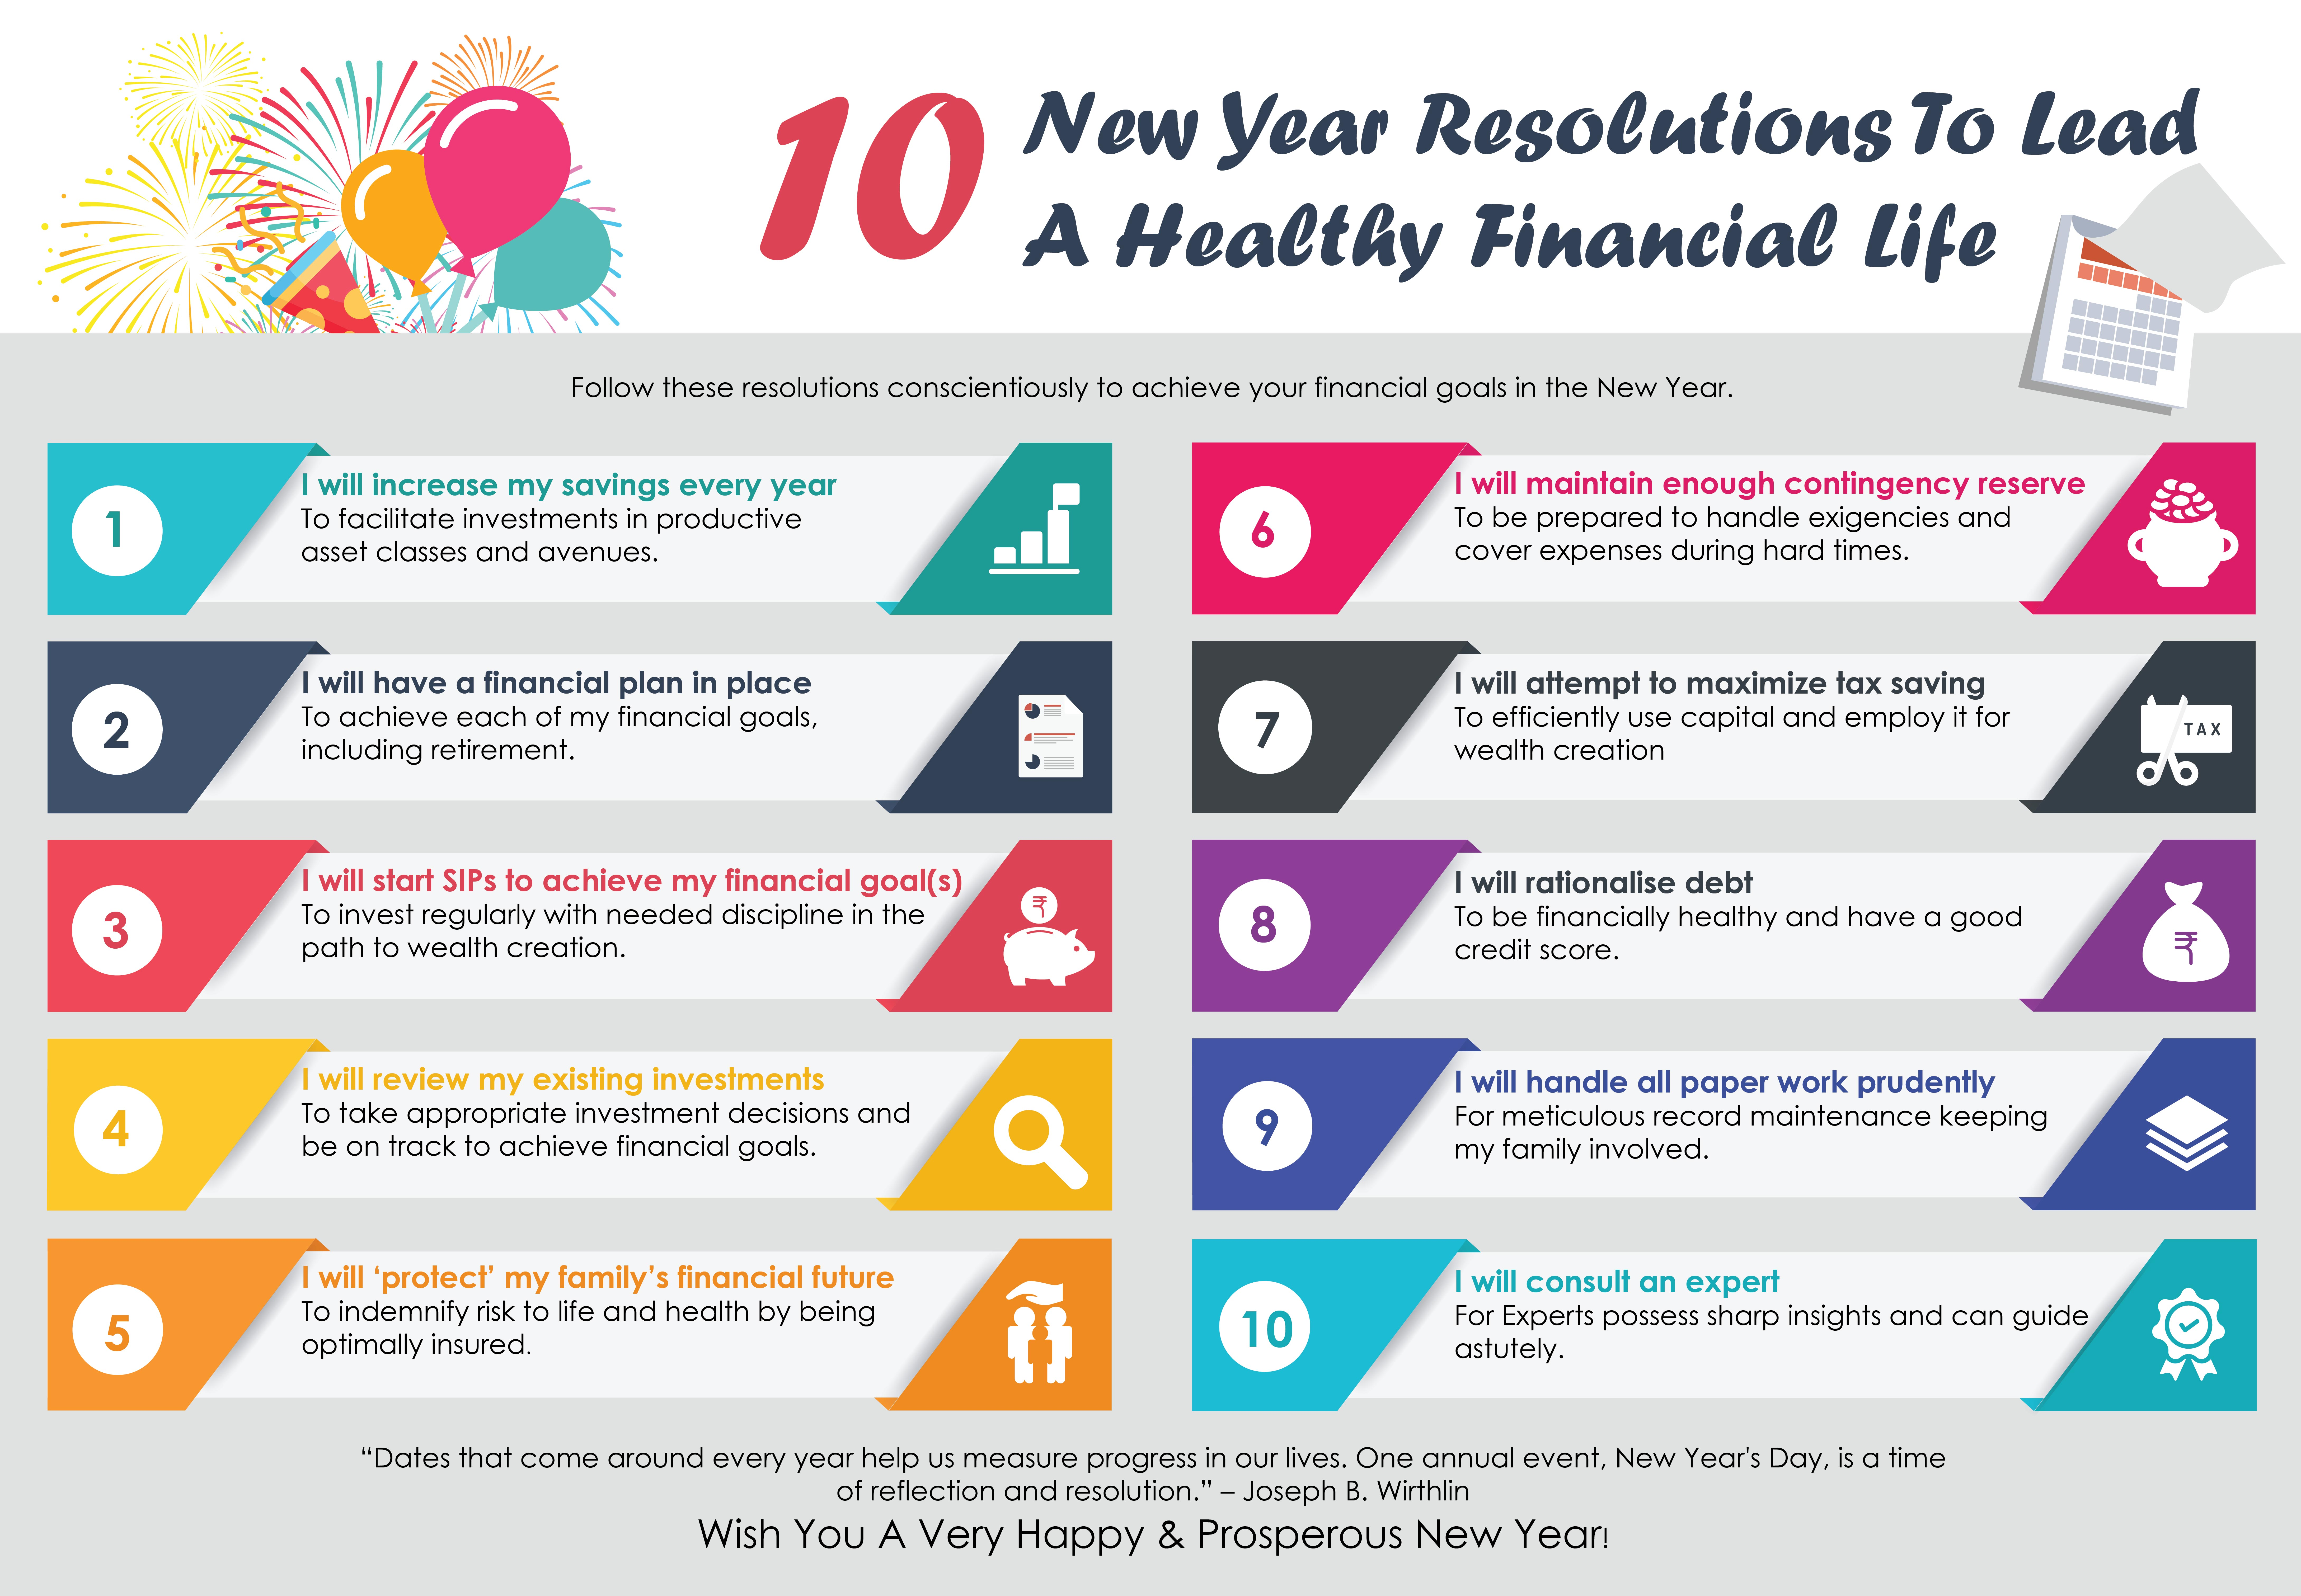 10 New Year Resolutions To Lead A Healthy Financial Life